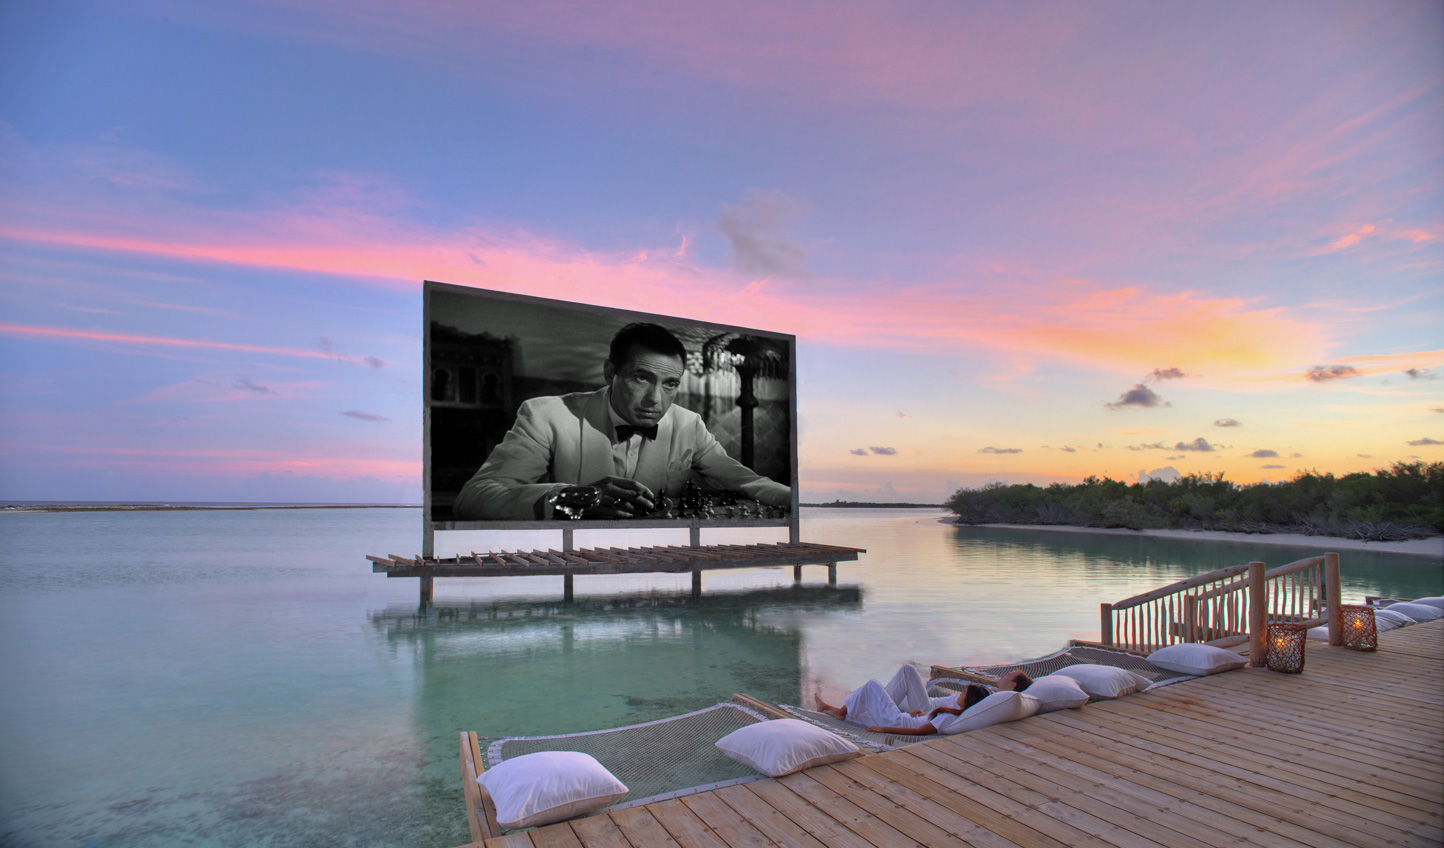 Relax with a film beneath the stars and above the water